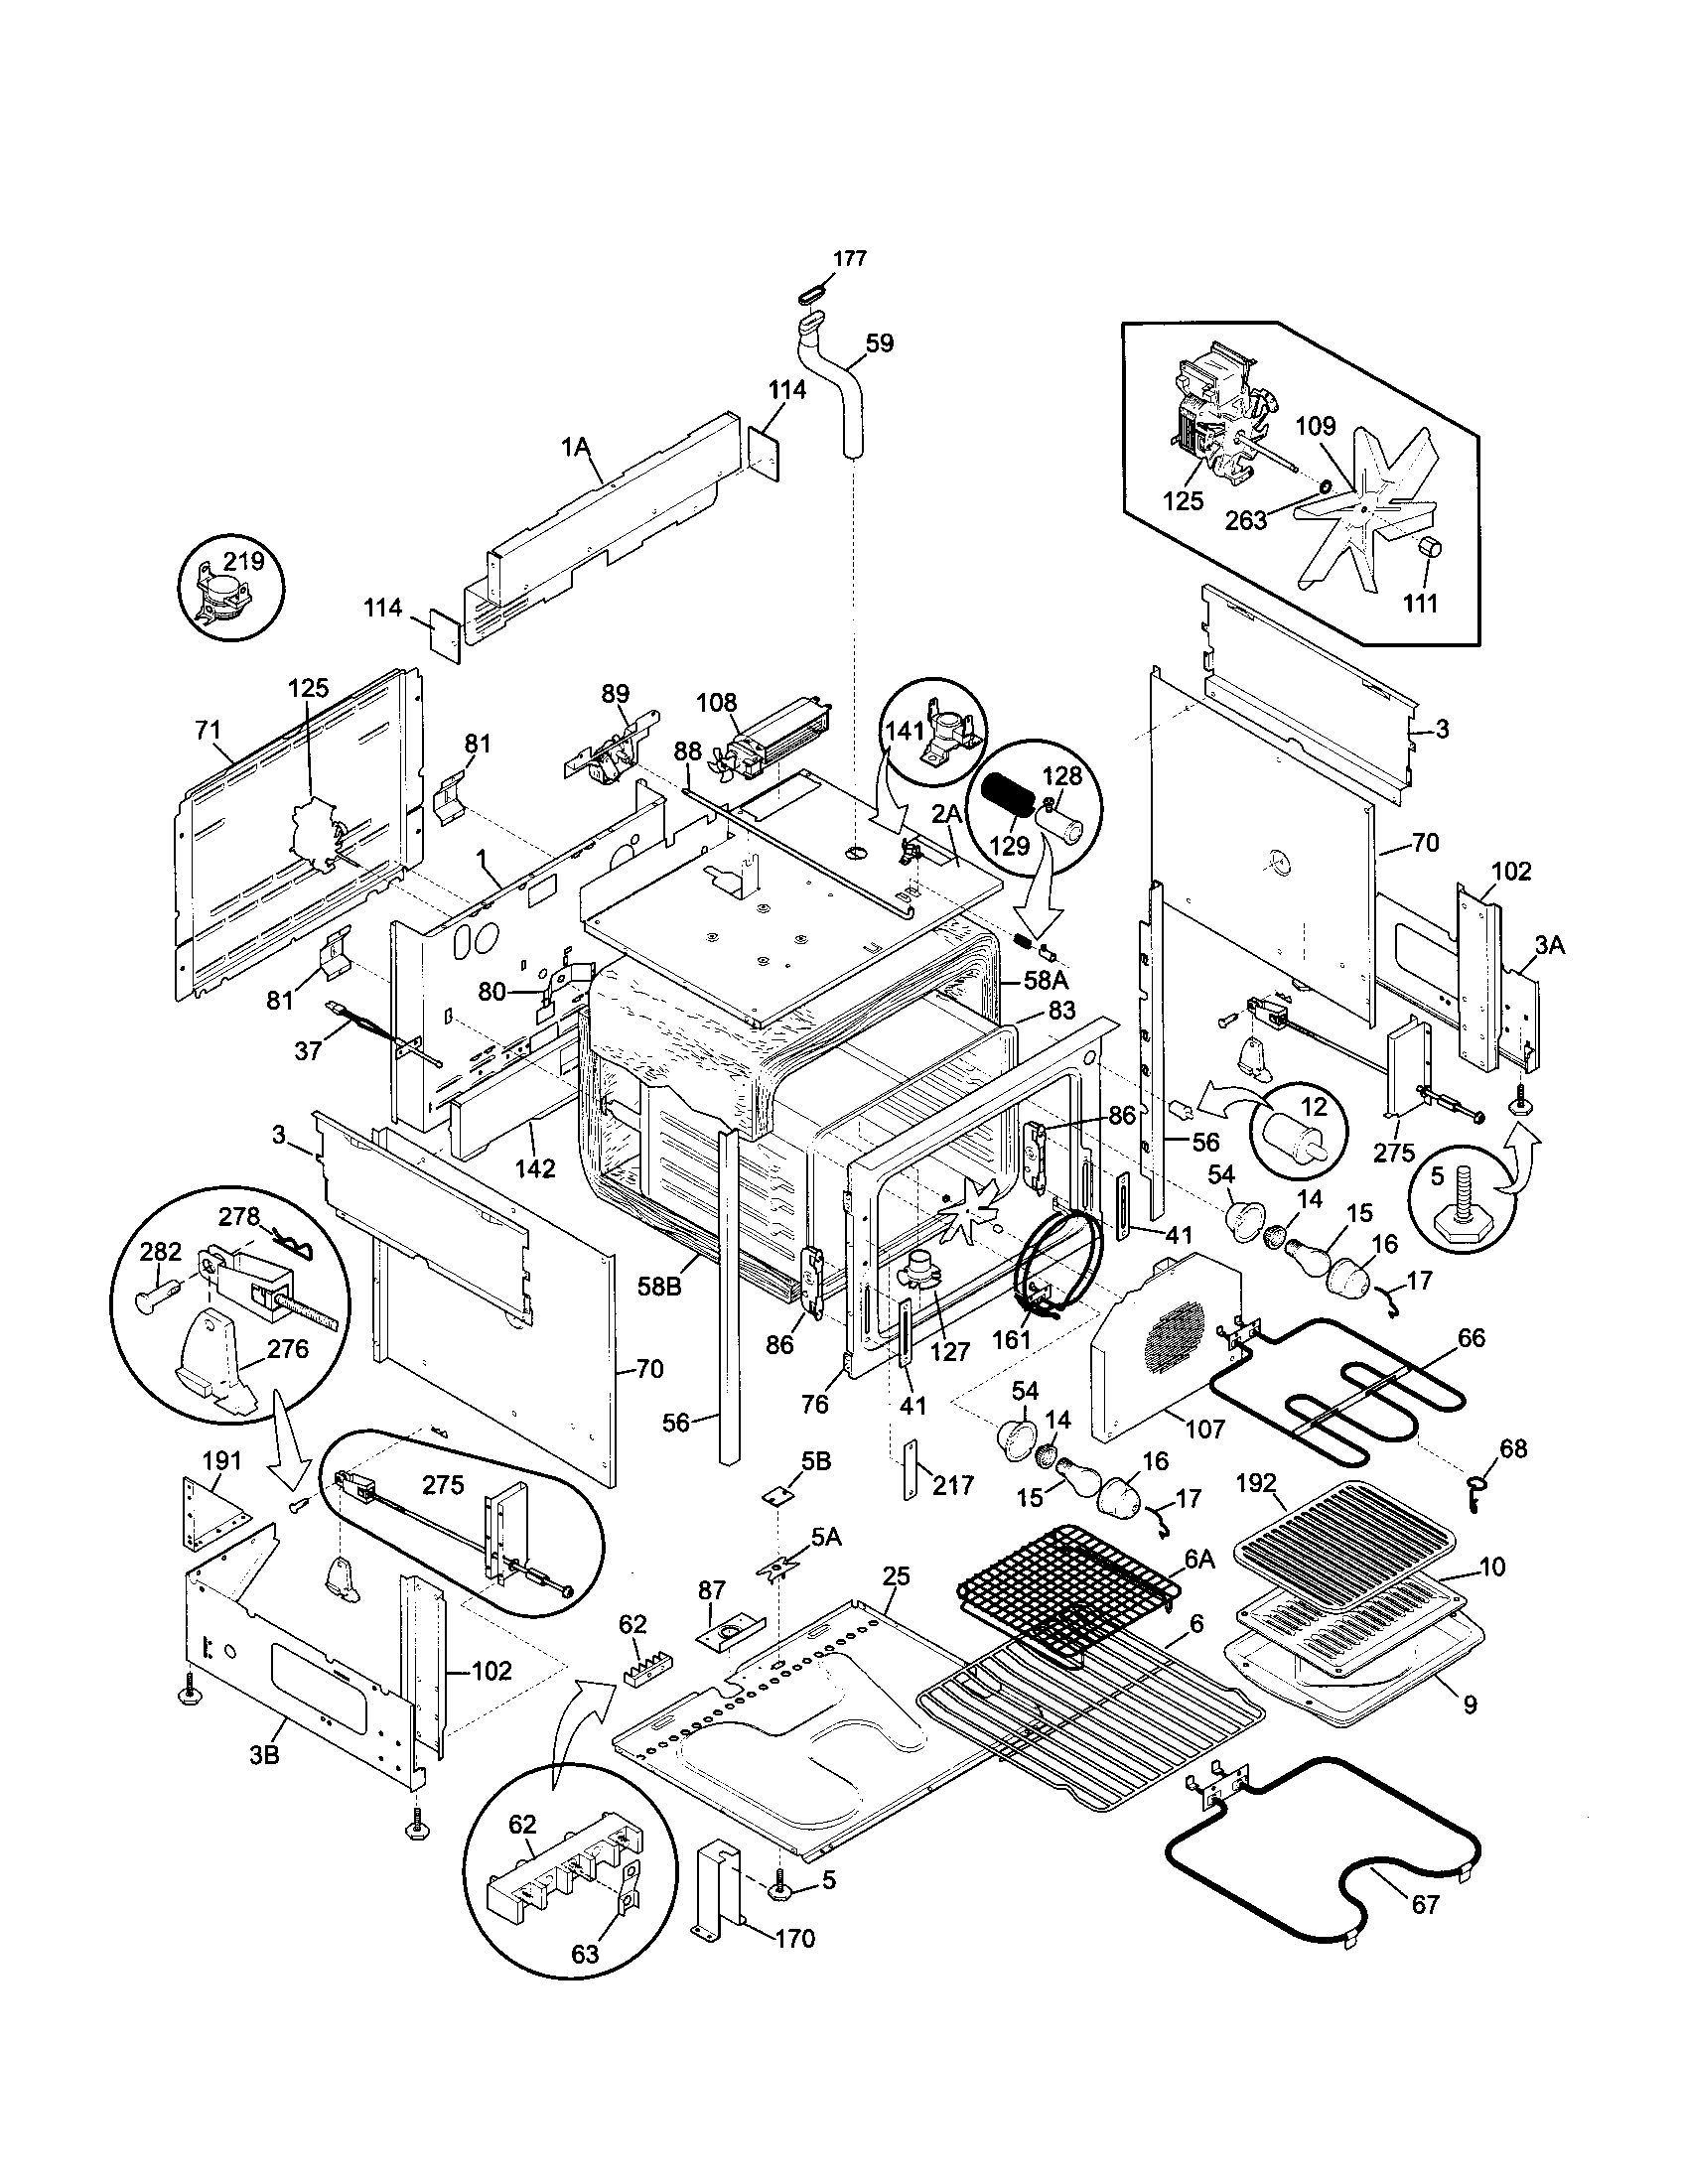 Kenmore Elite Dishwasher Schematic Wiring Diagram Detailed